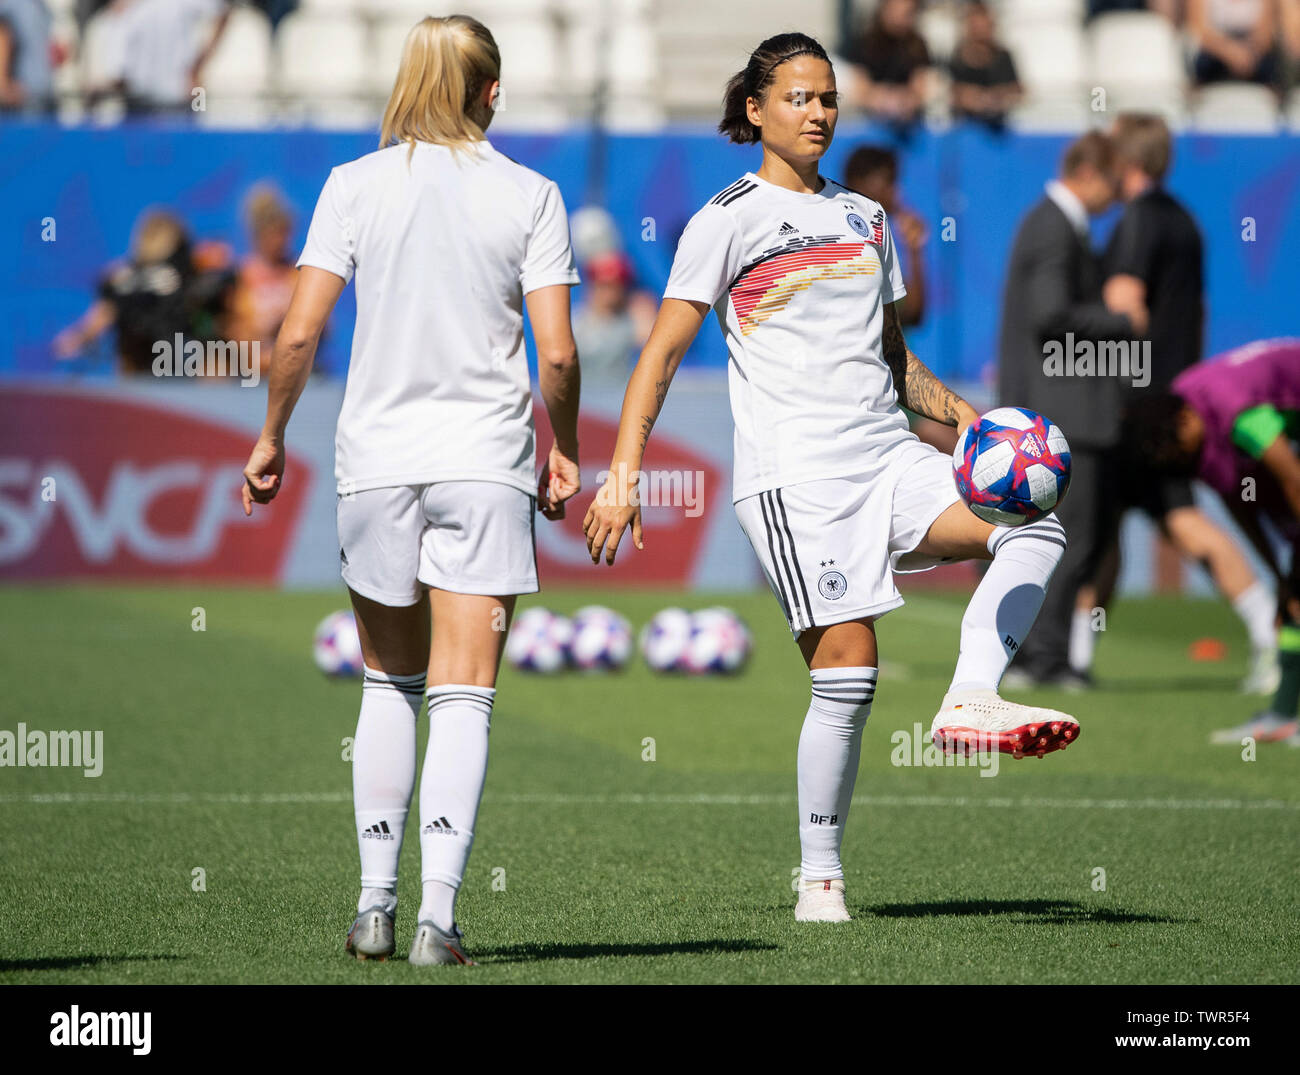 France 22 June 2019, (France), Grenoble: Football, women: WM, Germany - Nigeria final round, round of sixteen, Stades des Alpes: Germany's Dzsenifer Marozsan (r) warms up with Turid Knaak before the game. Germany won 3:0. Photo: Sebastian Gollnow/dpa - Stock Image